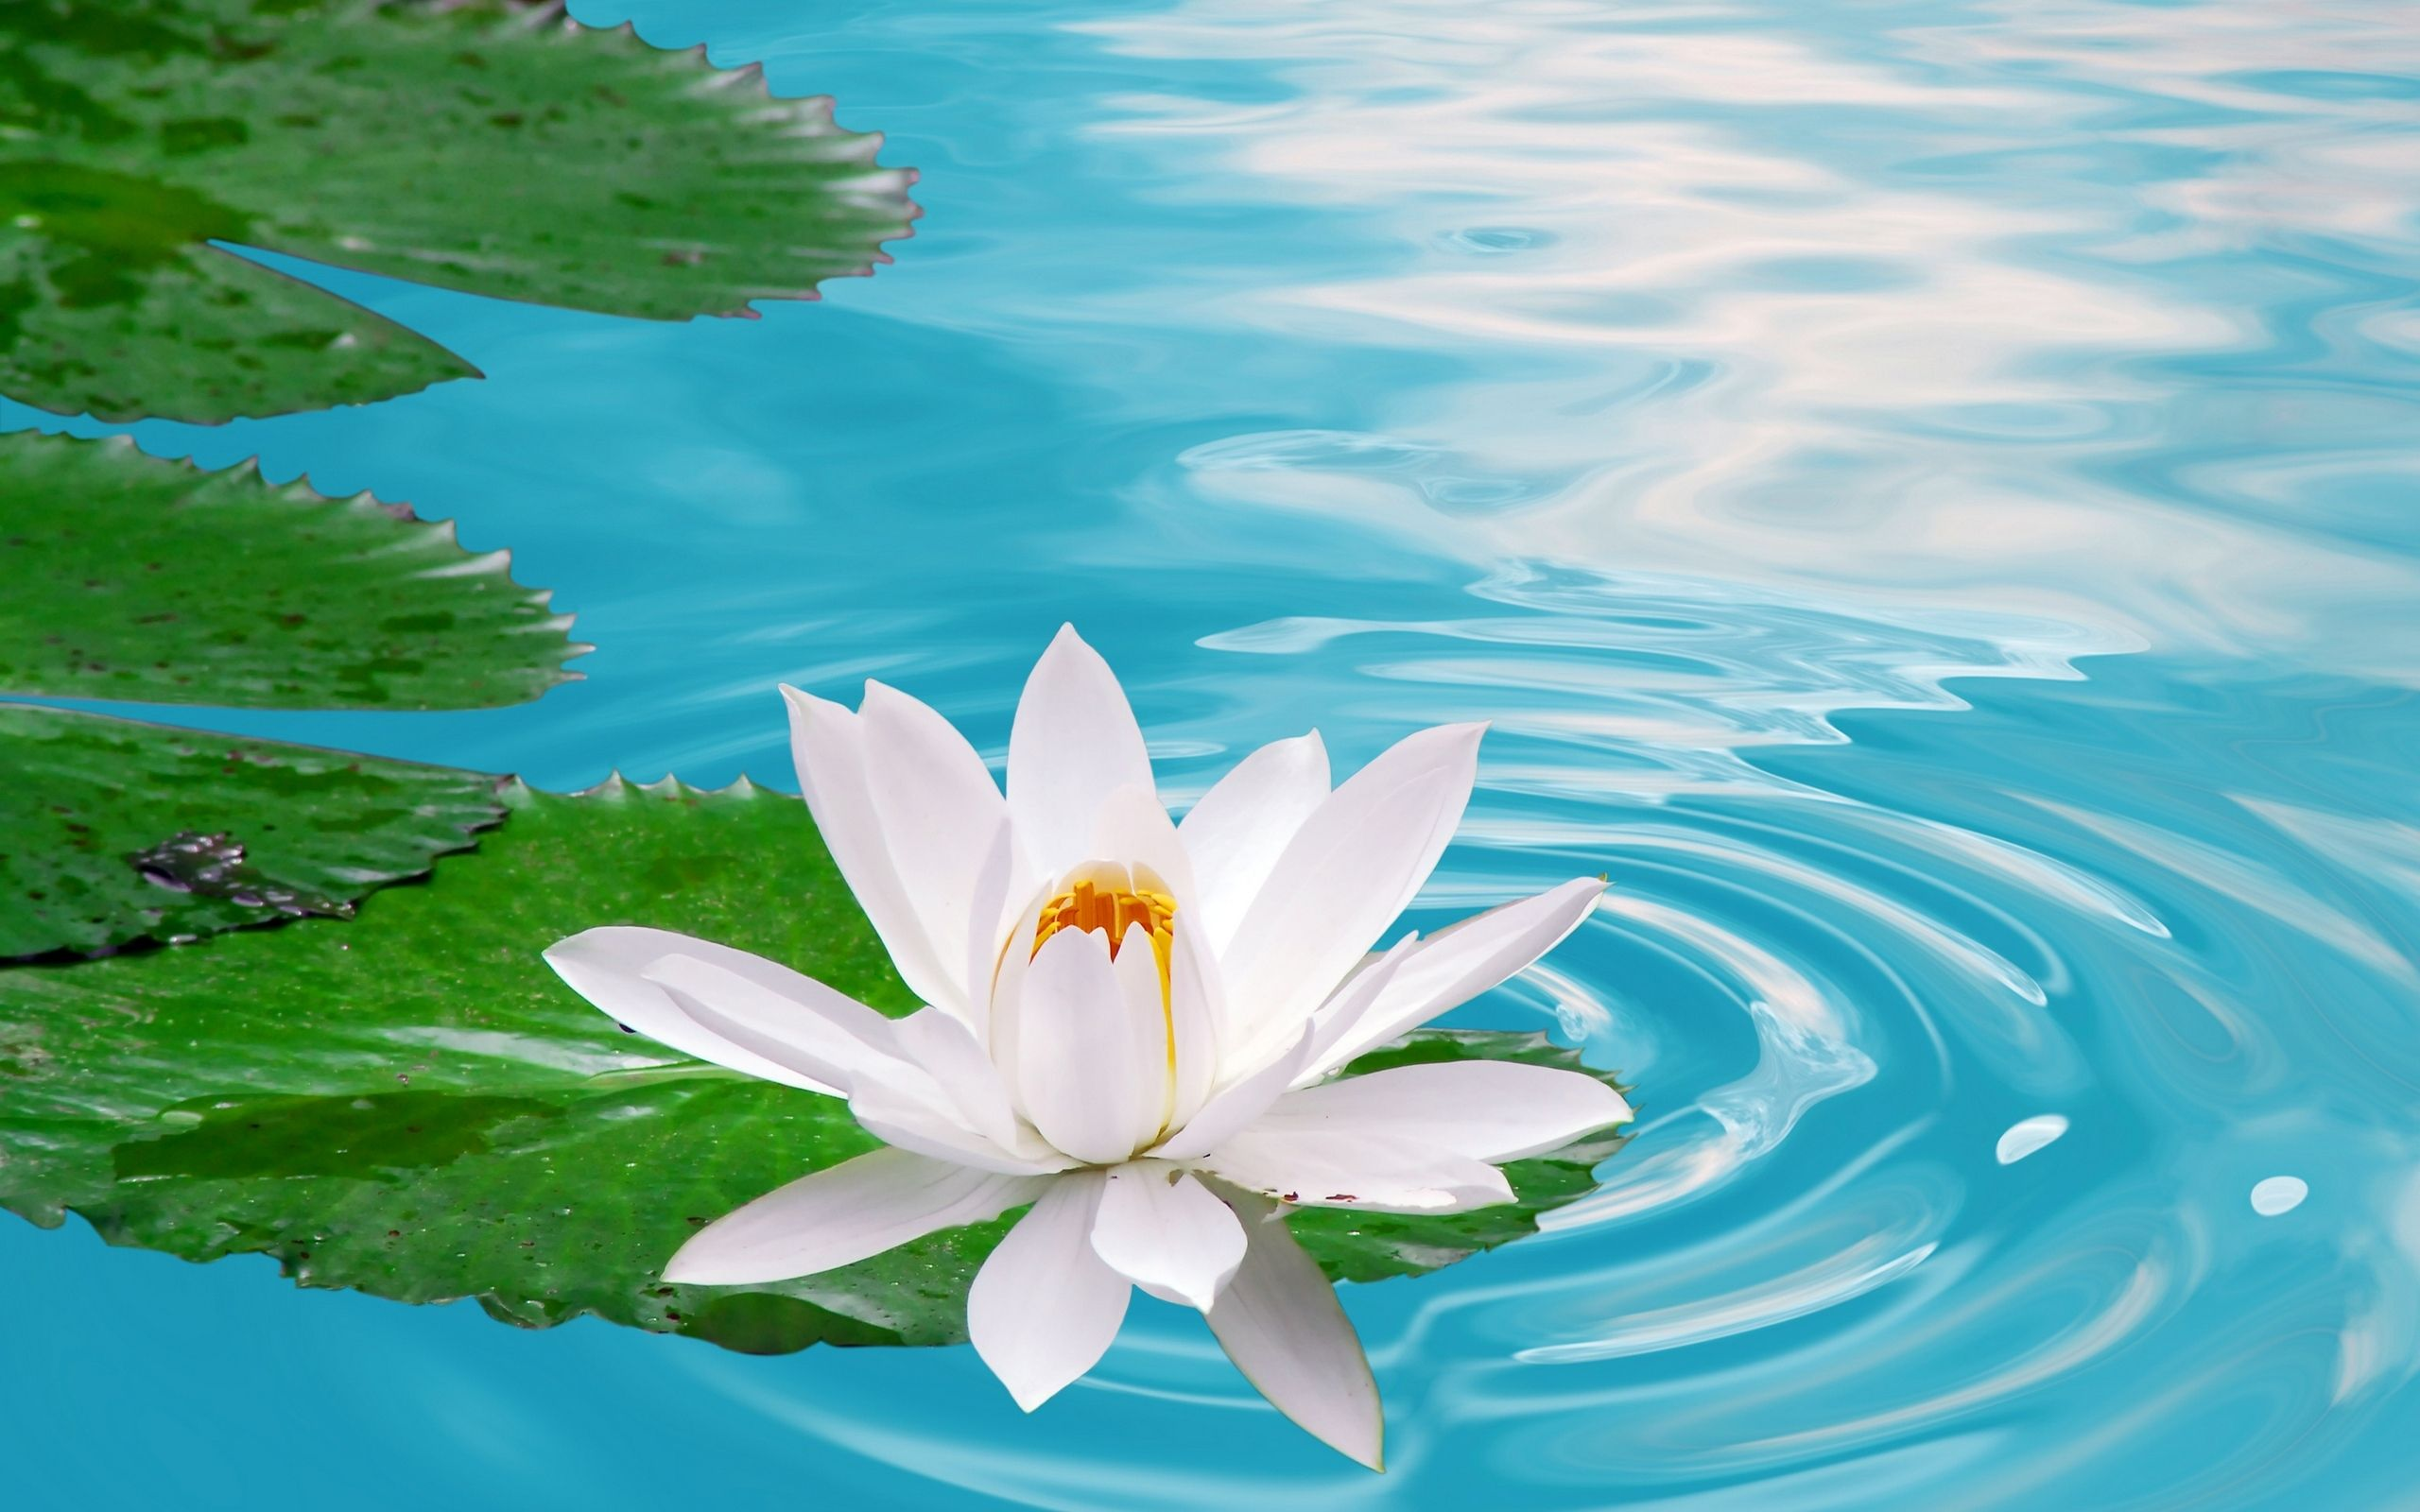 Waterlily Flowers Hd Wallpapers Water Lily Flowers Hd Wallpapers